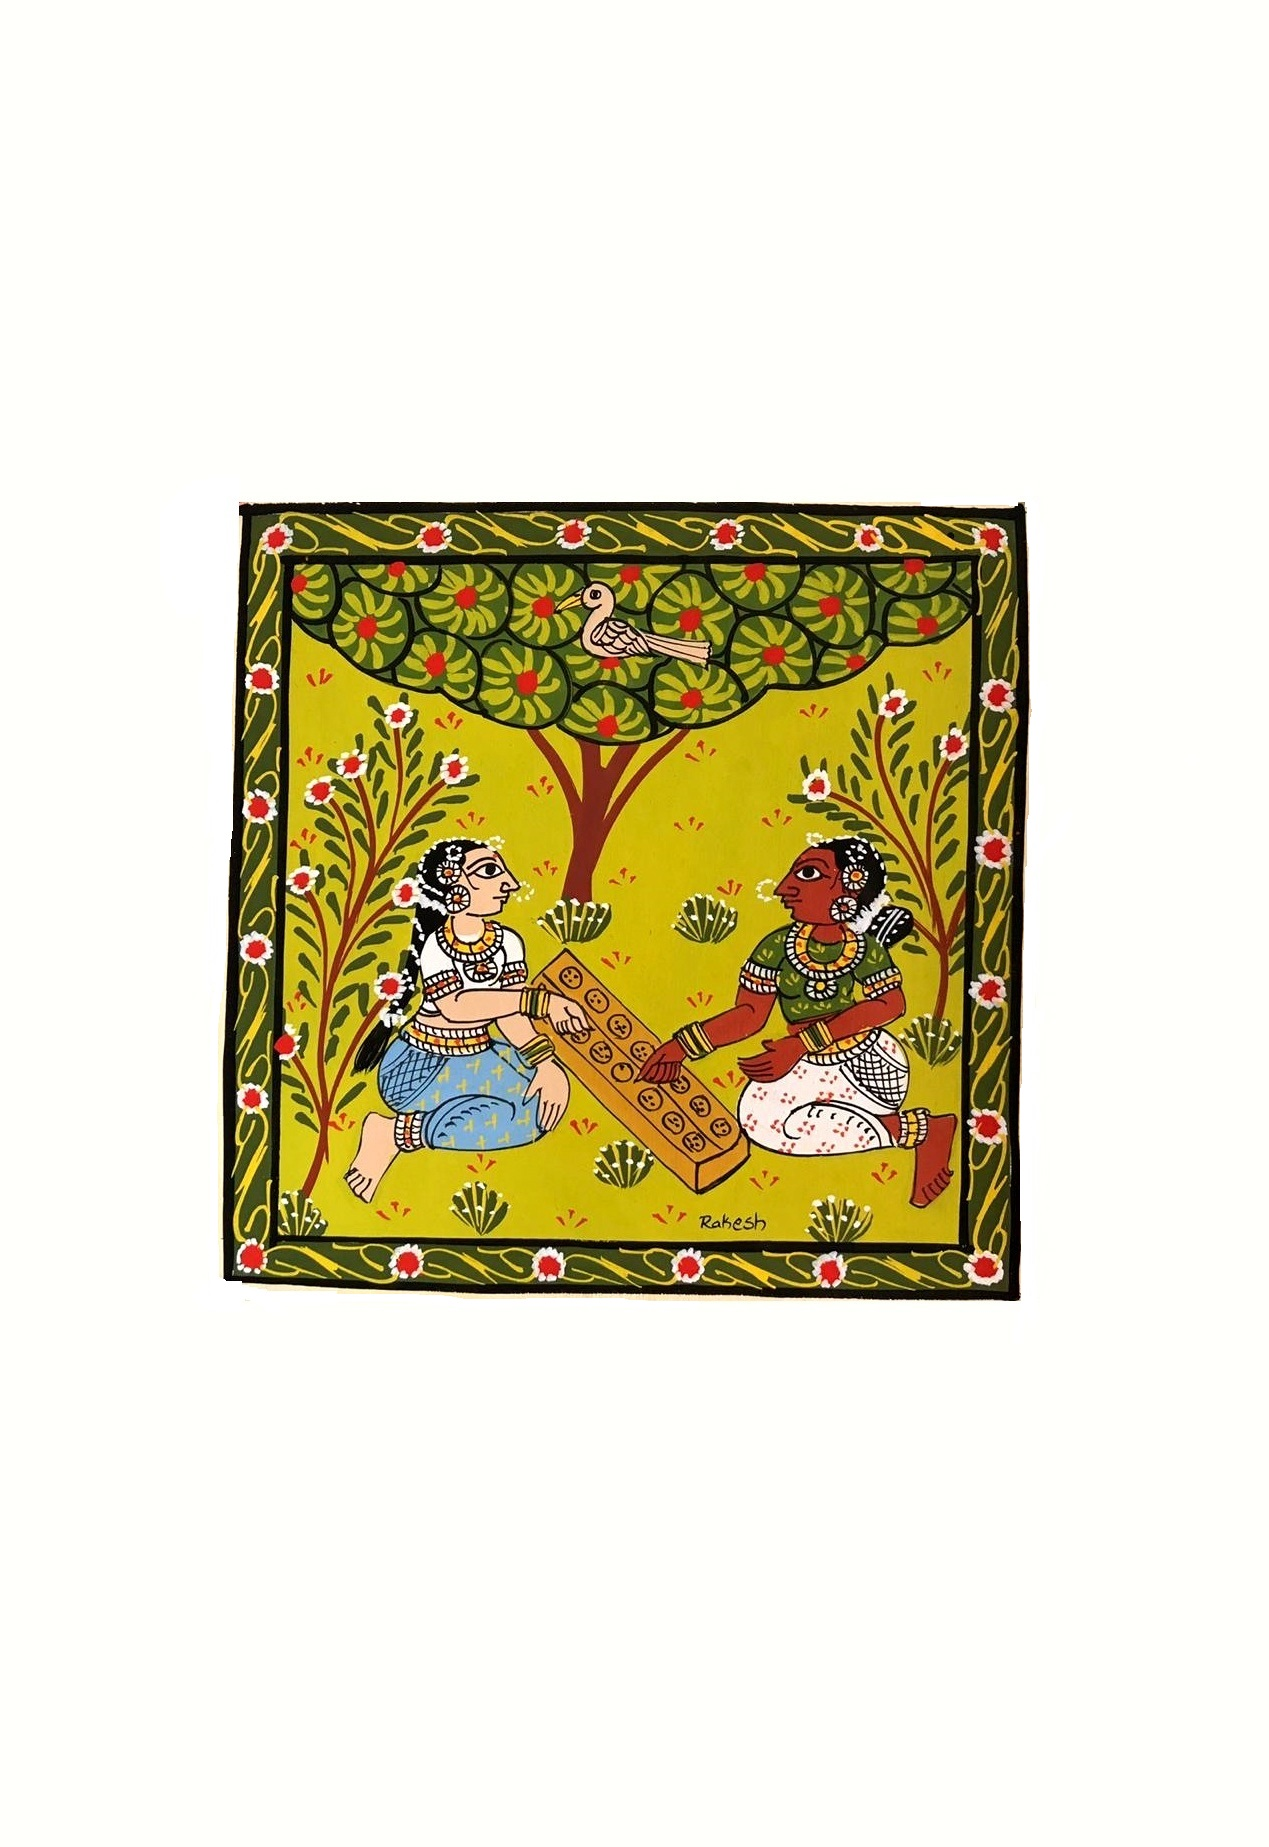 Women at Play in Cheriyal Painting